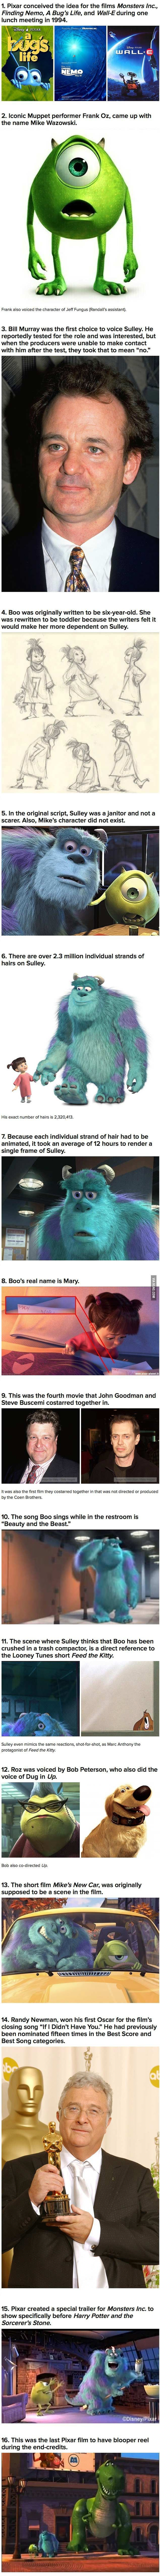 Monsters Inc. info